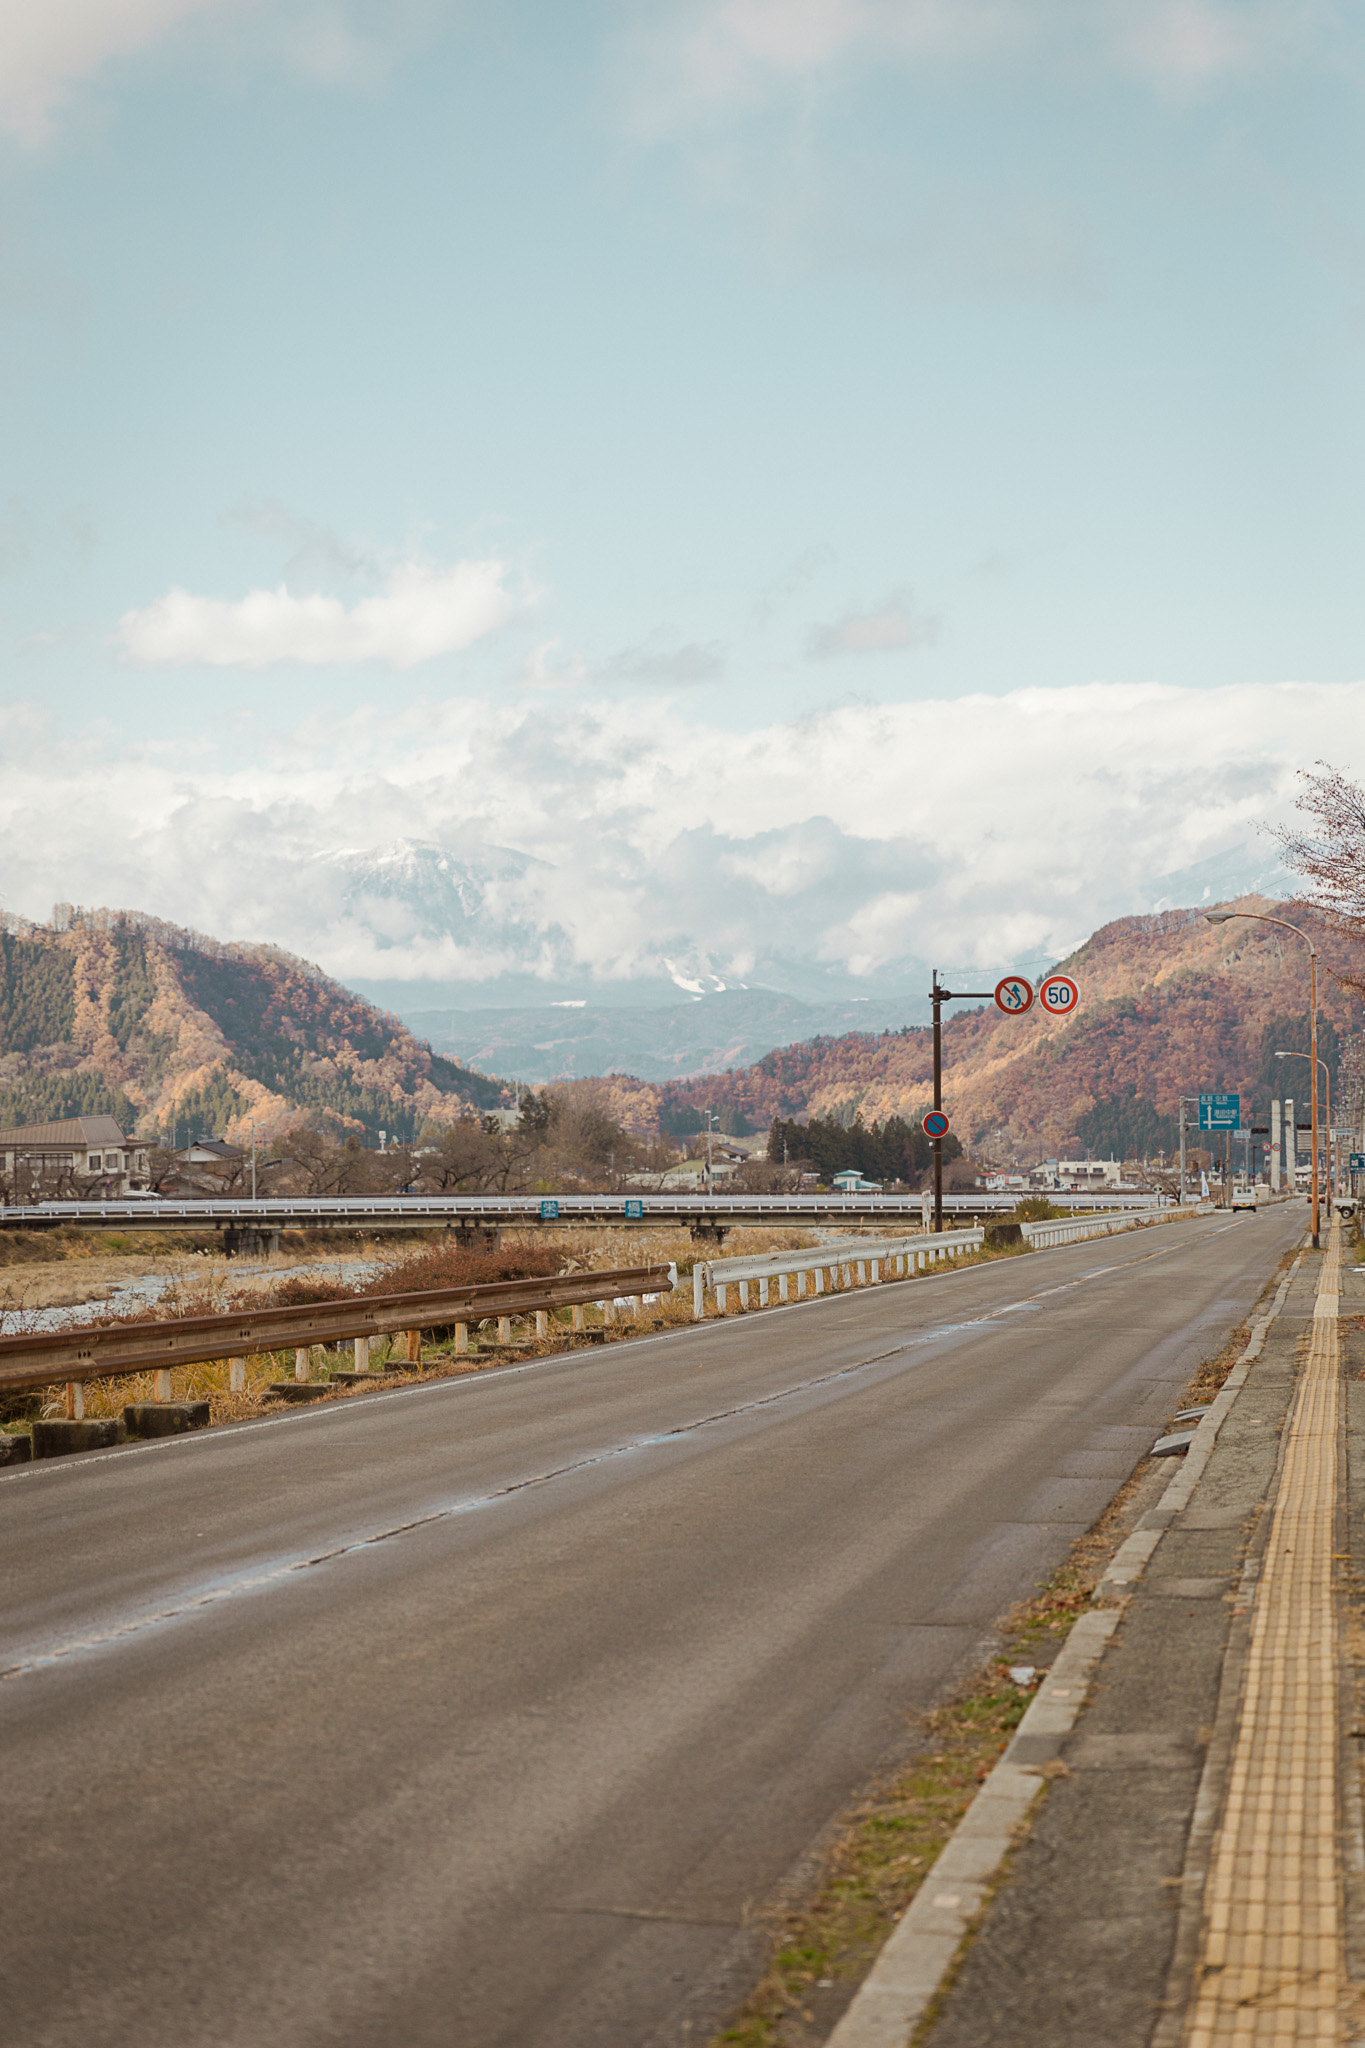 Road and mountain view in Shibu Onsen town